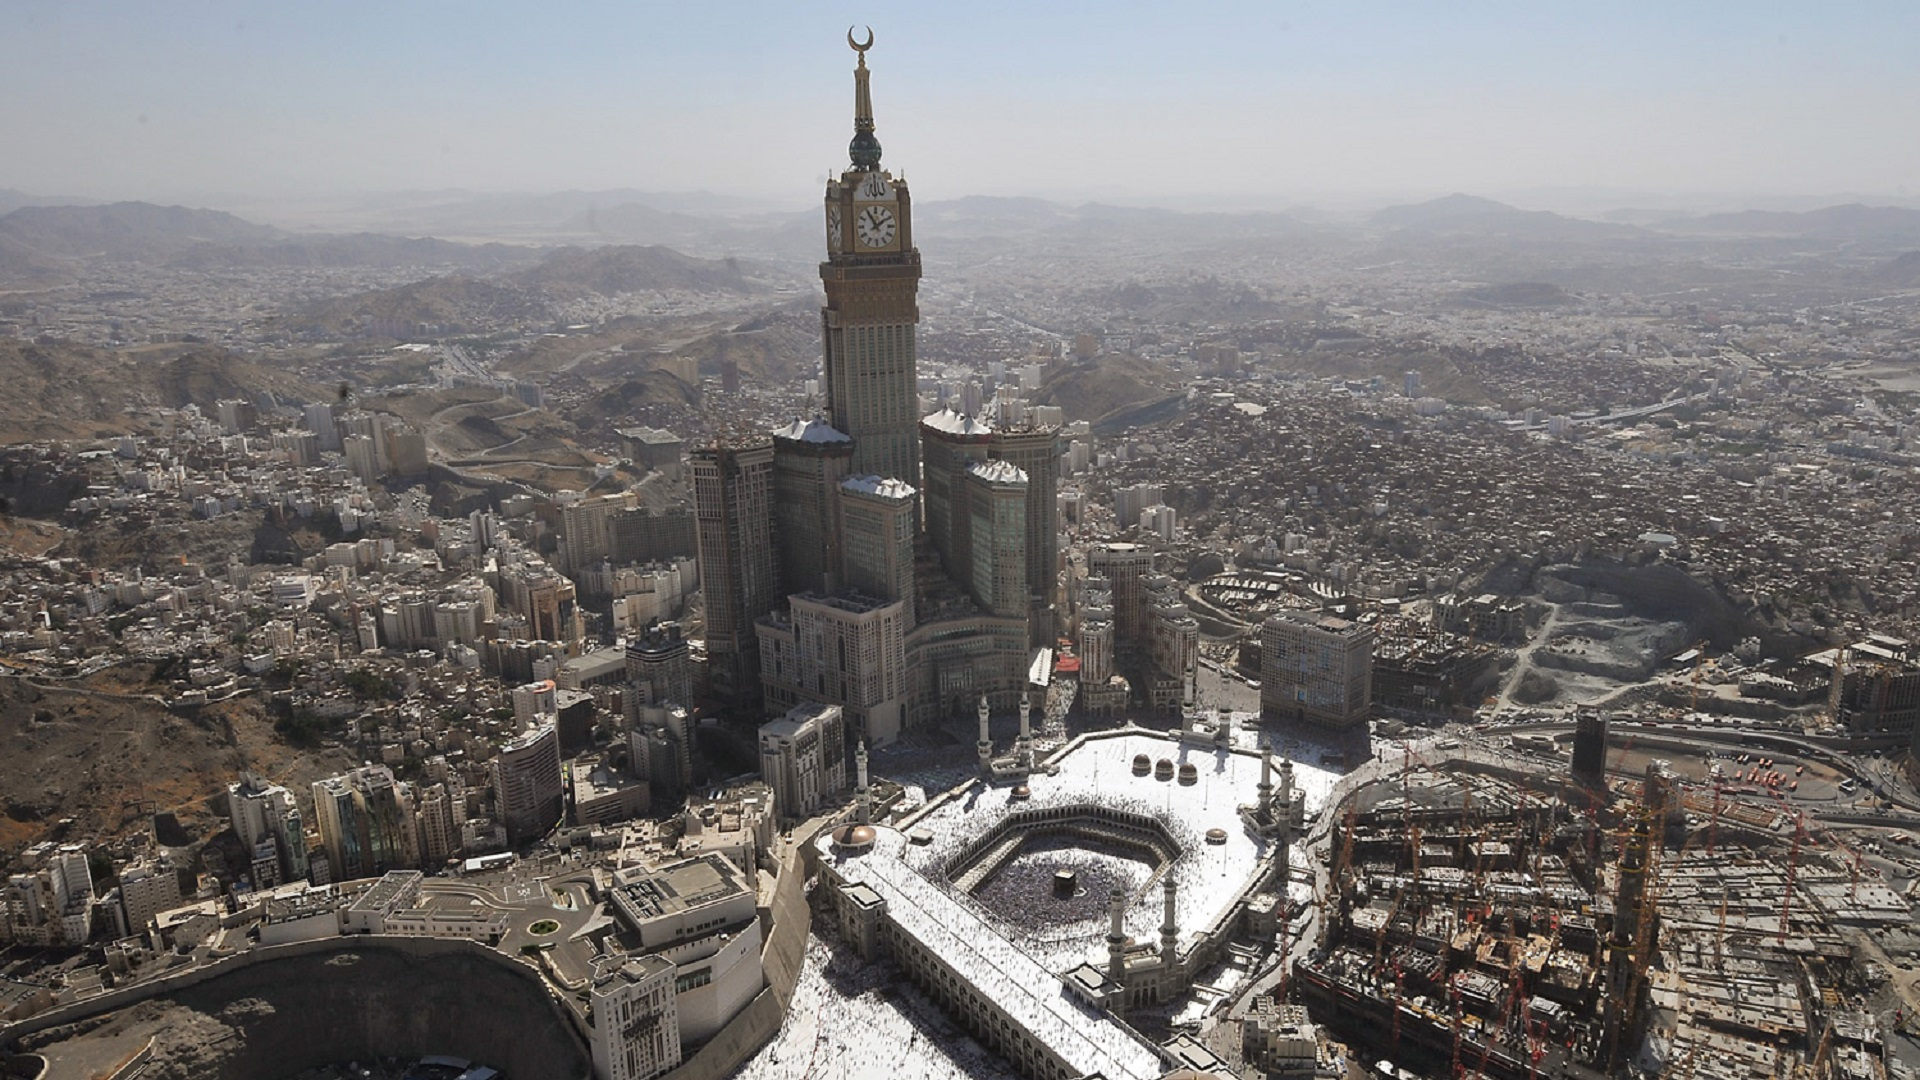 Mecca Clock Tower Hd Wallpaper Background Image 1920x1080 Id 497483 Wallpaper Abyss